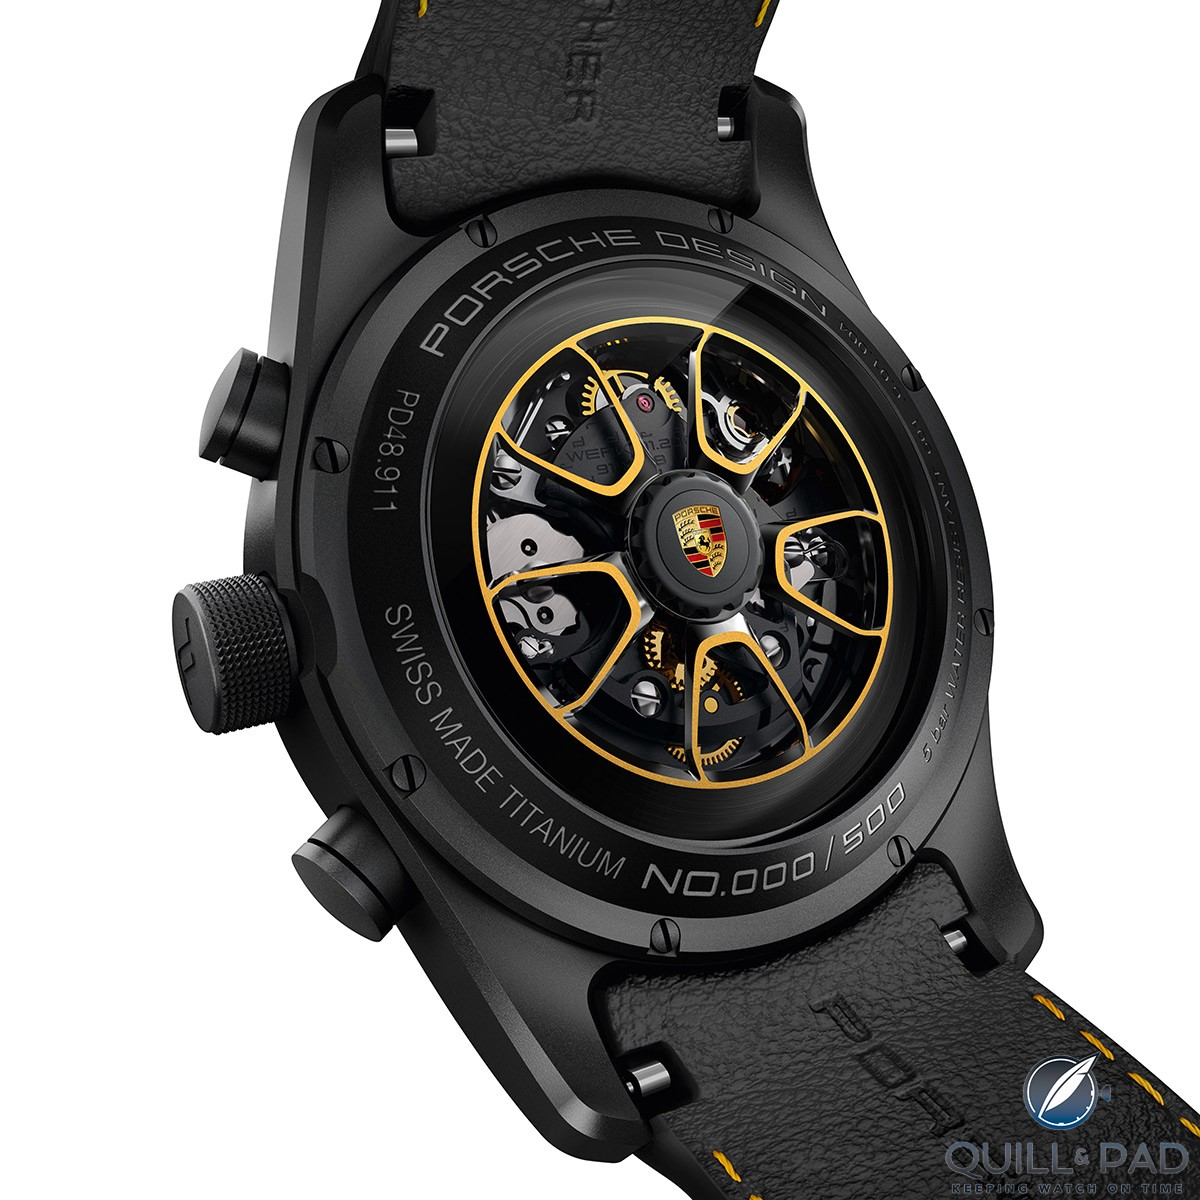 Rotor of the Porsche Design Chronograph 911 Turbo S Exclusive Series matching the car's wheels